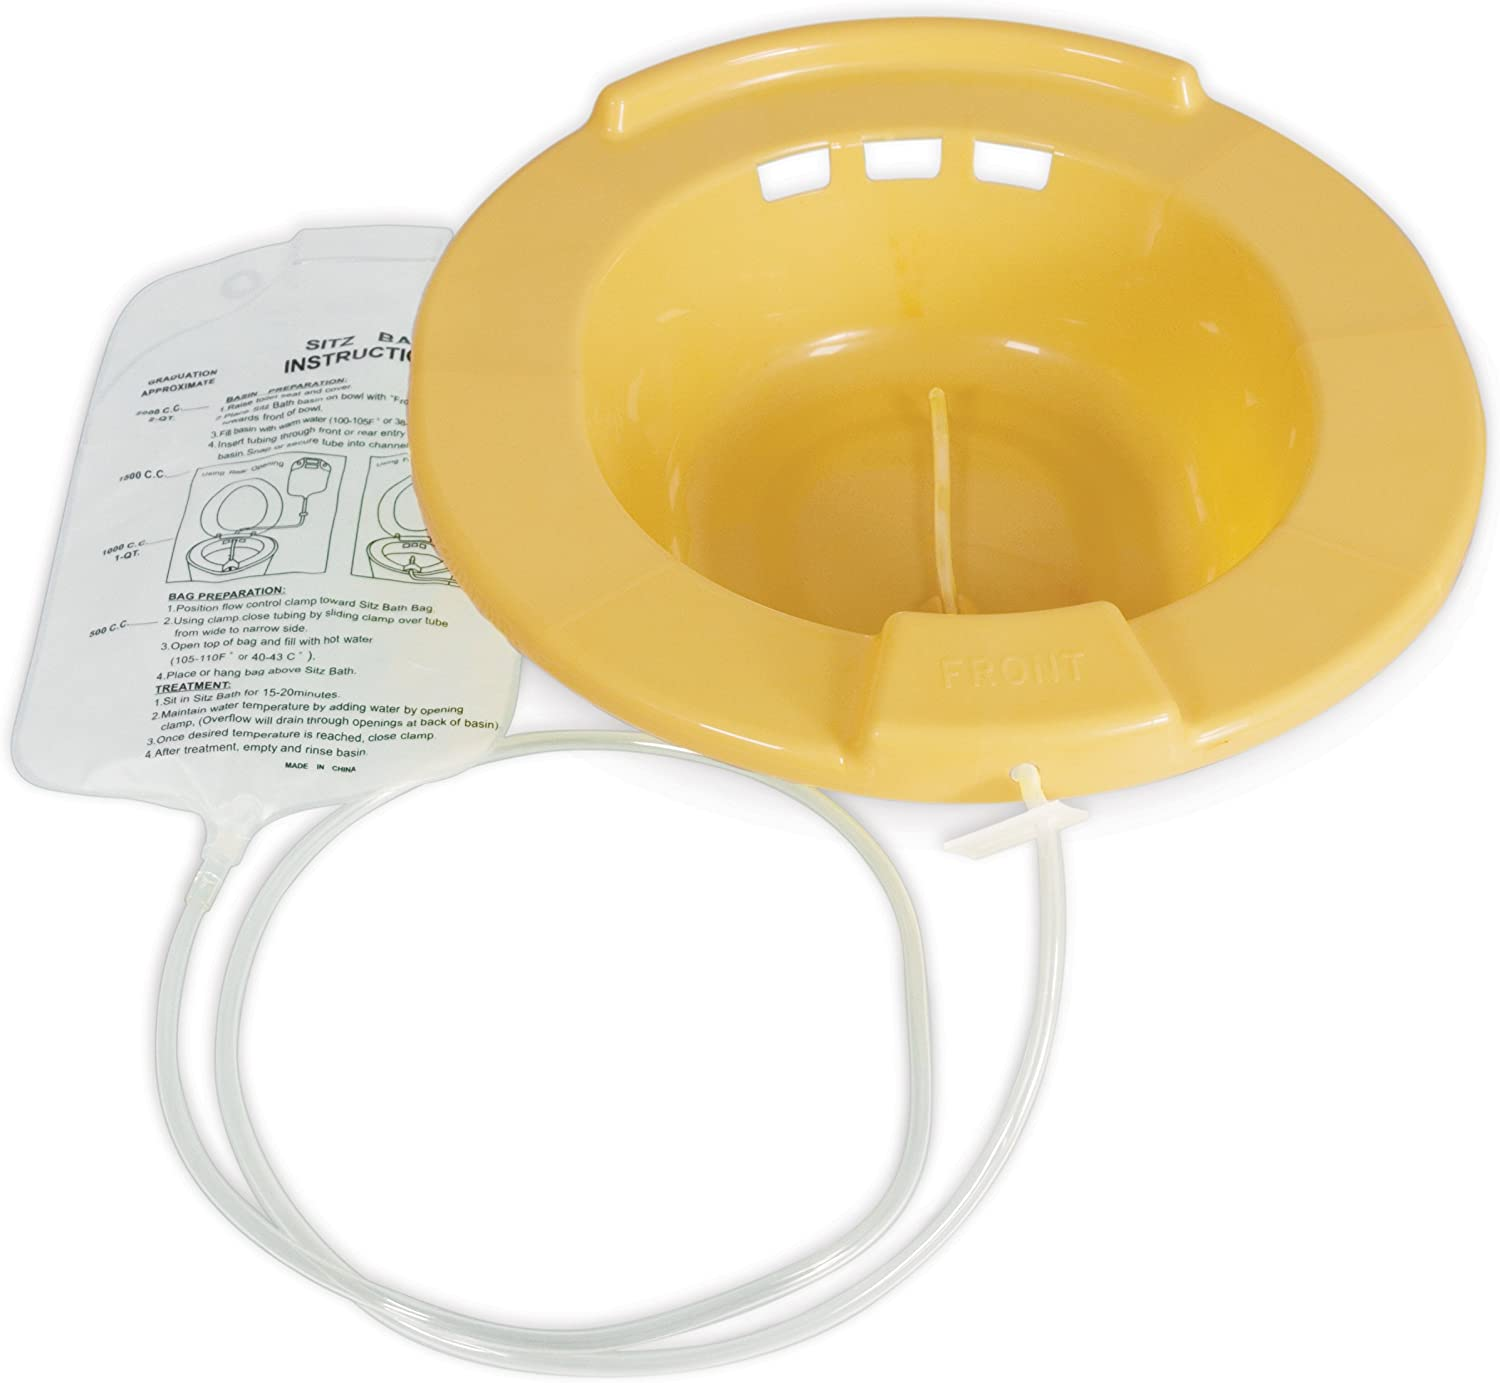 Medpro Durable Home Sitz Bath with Tubing and Water Bag